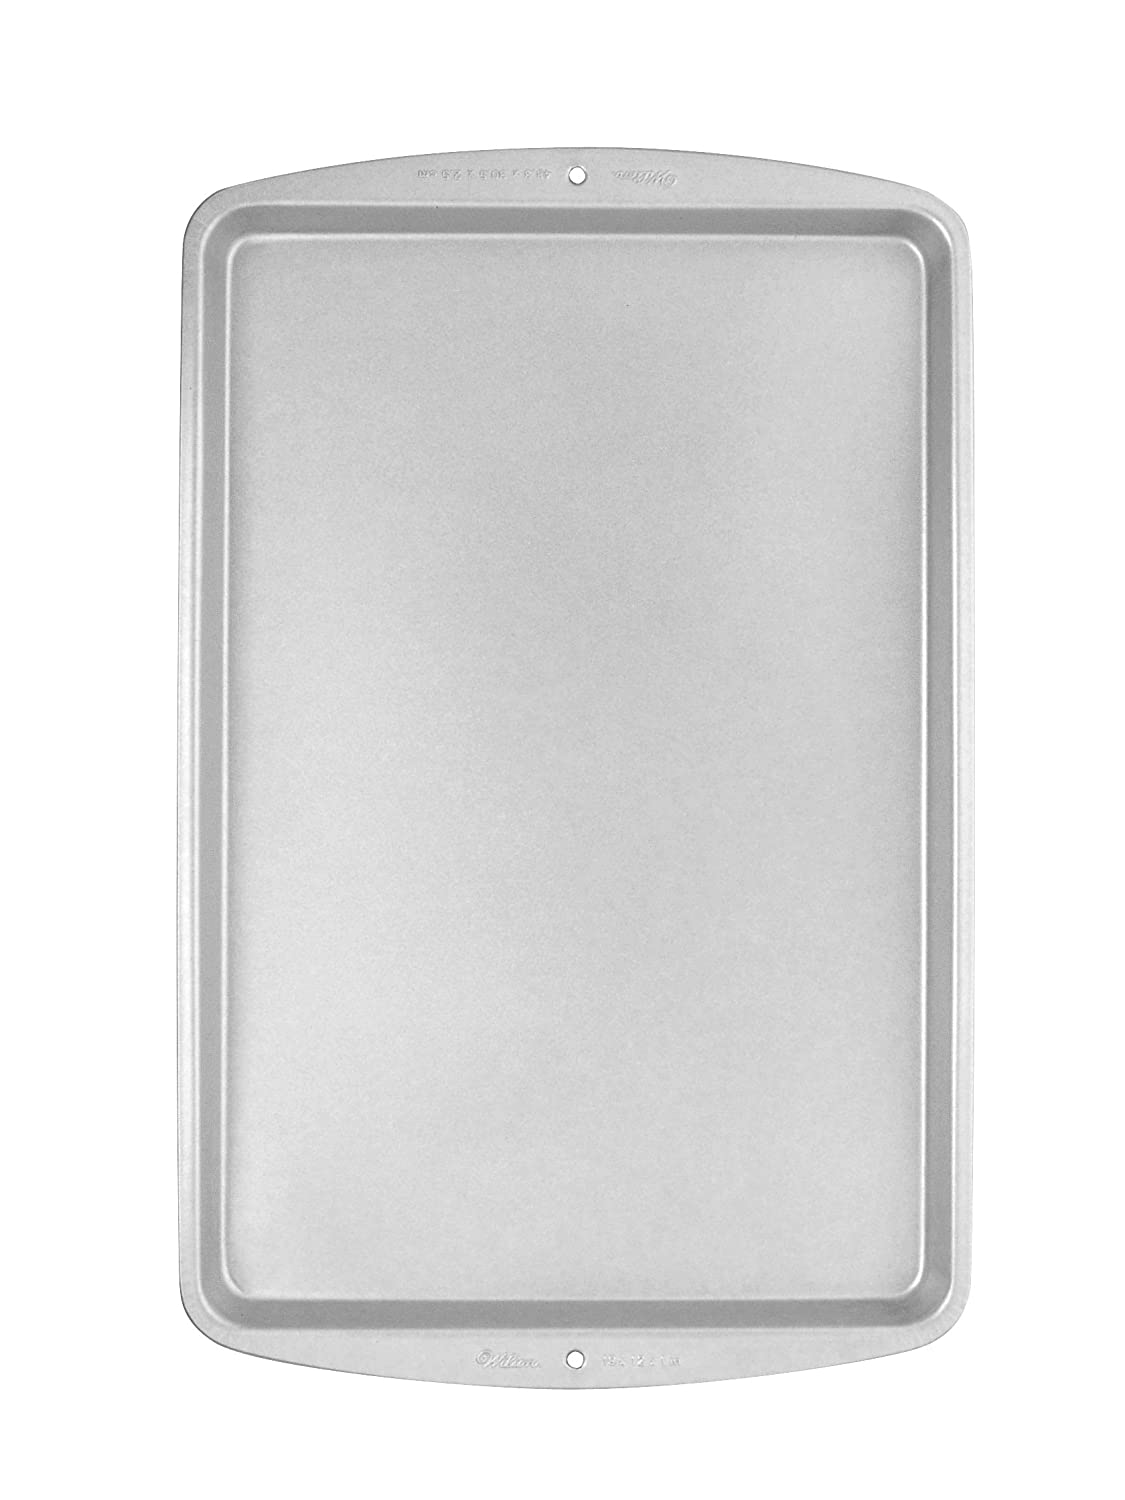 Wilton Recipe Right Jelly Roll Air Pan, 17 1/4 x 11 1/2 Inches